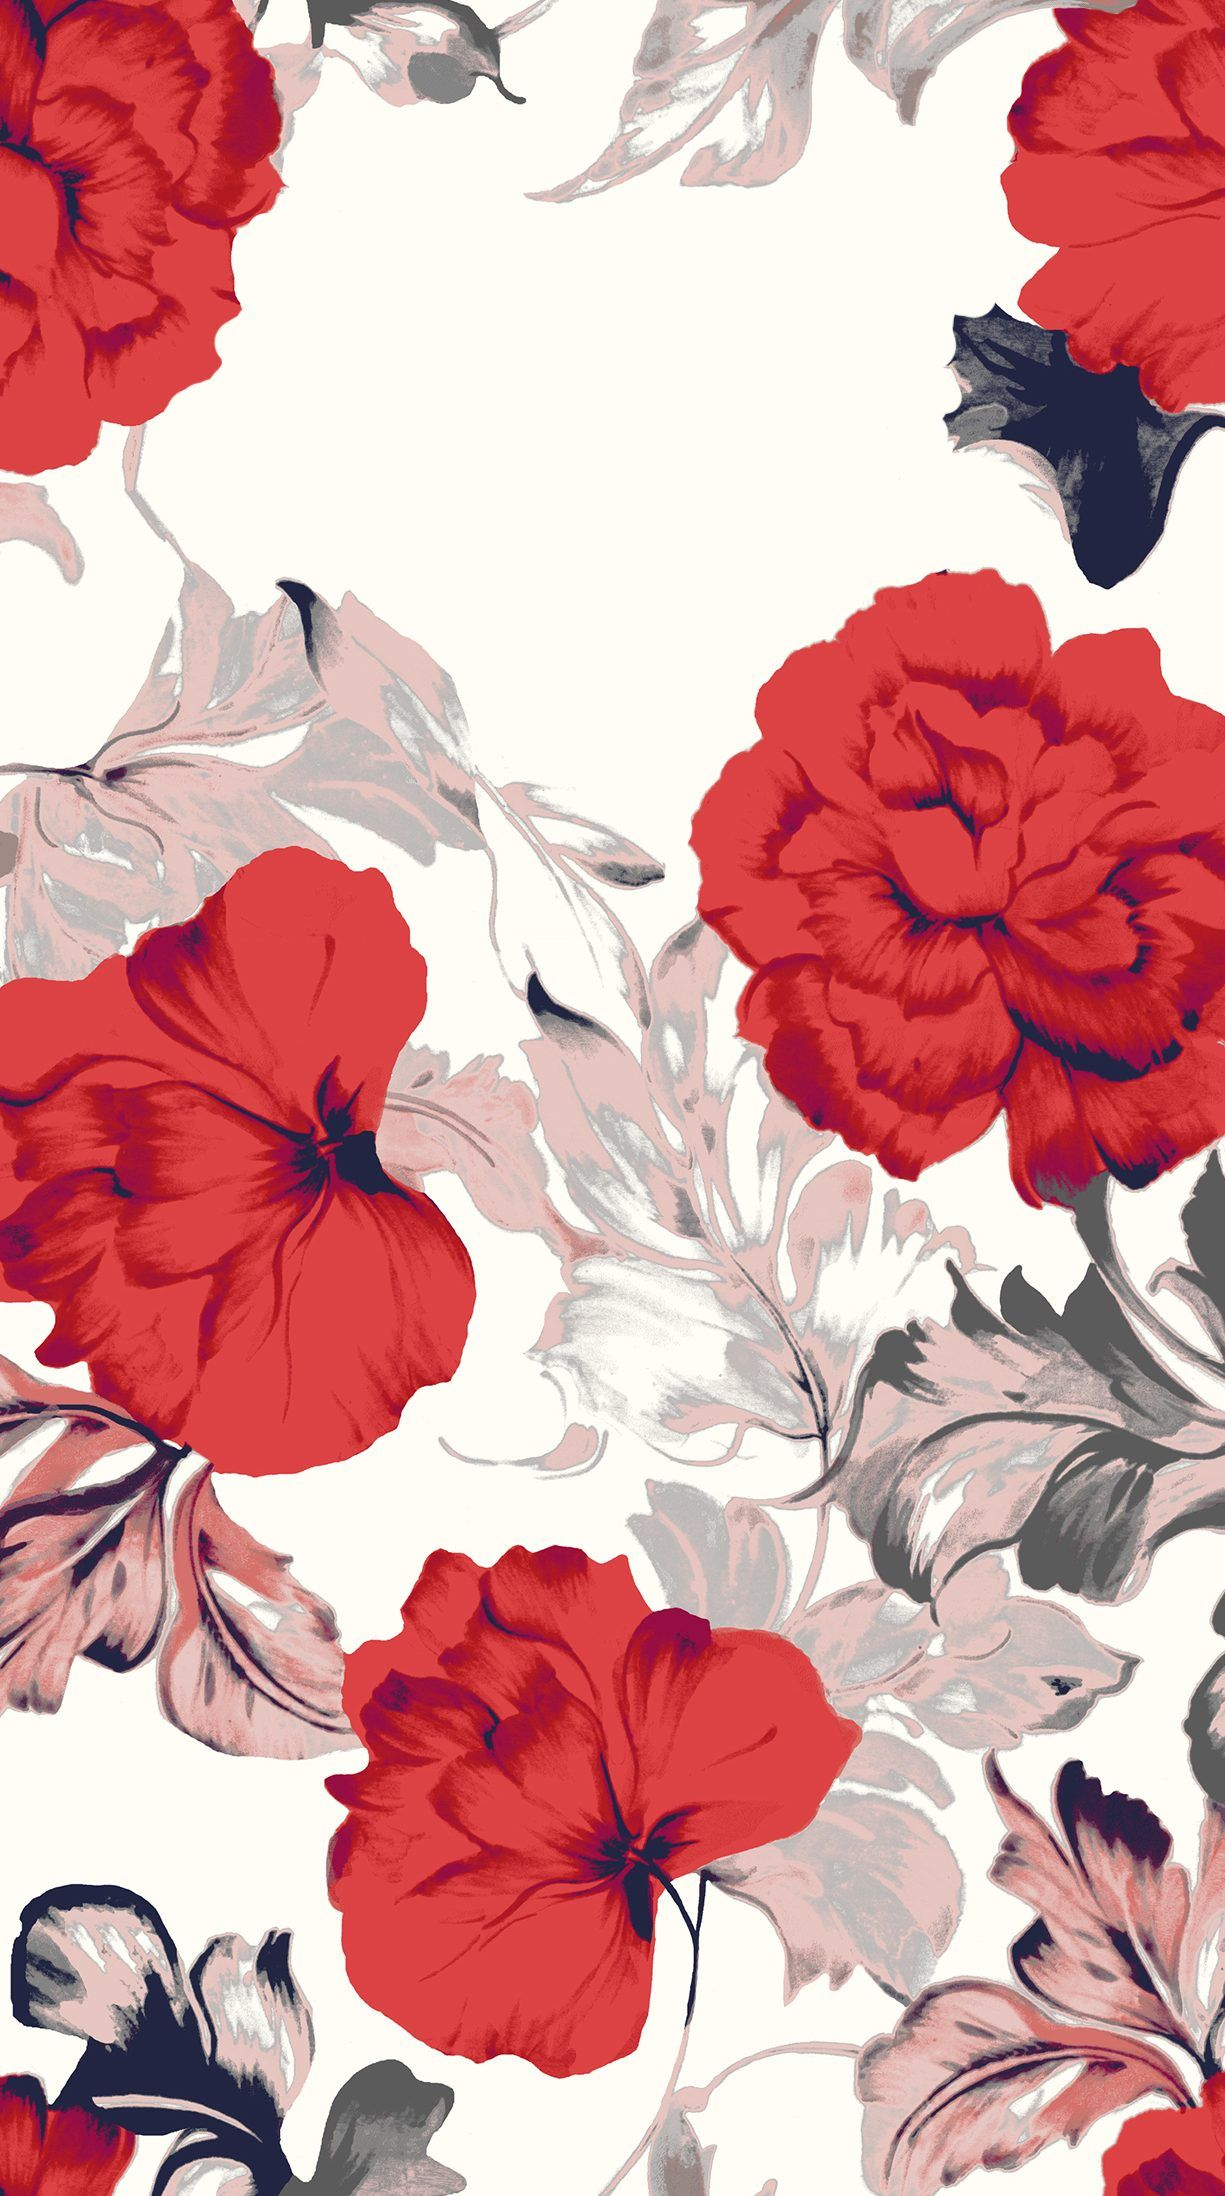 50 Floral Background Ideas Download Free Background Images Floral Background Hearing About The Floral Wallpaper Iphone Floral Wallpaper Flower Wallpaper